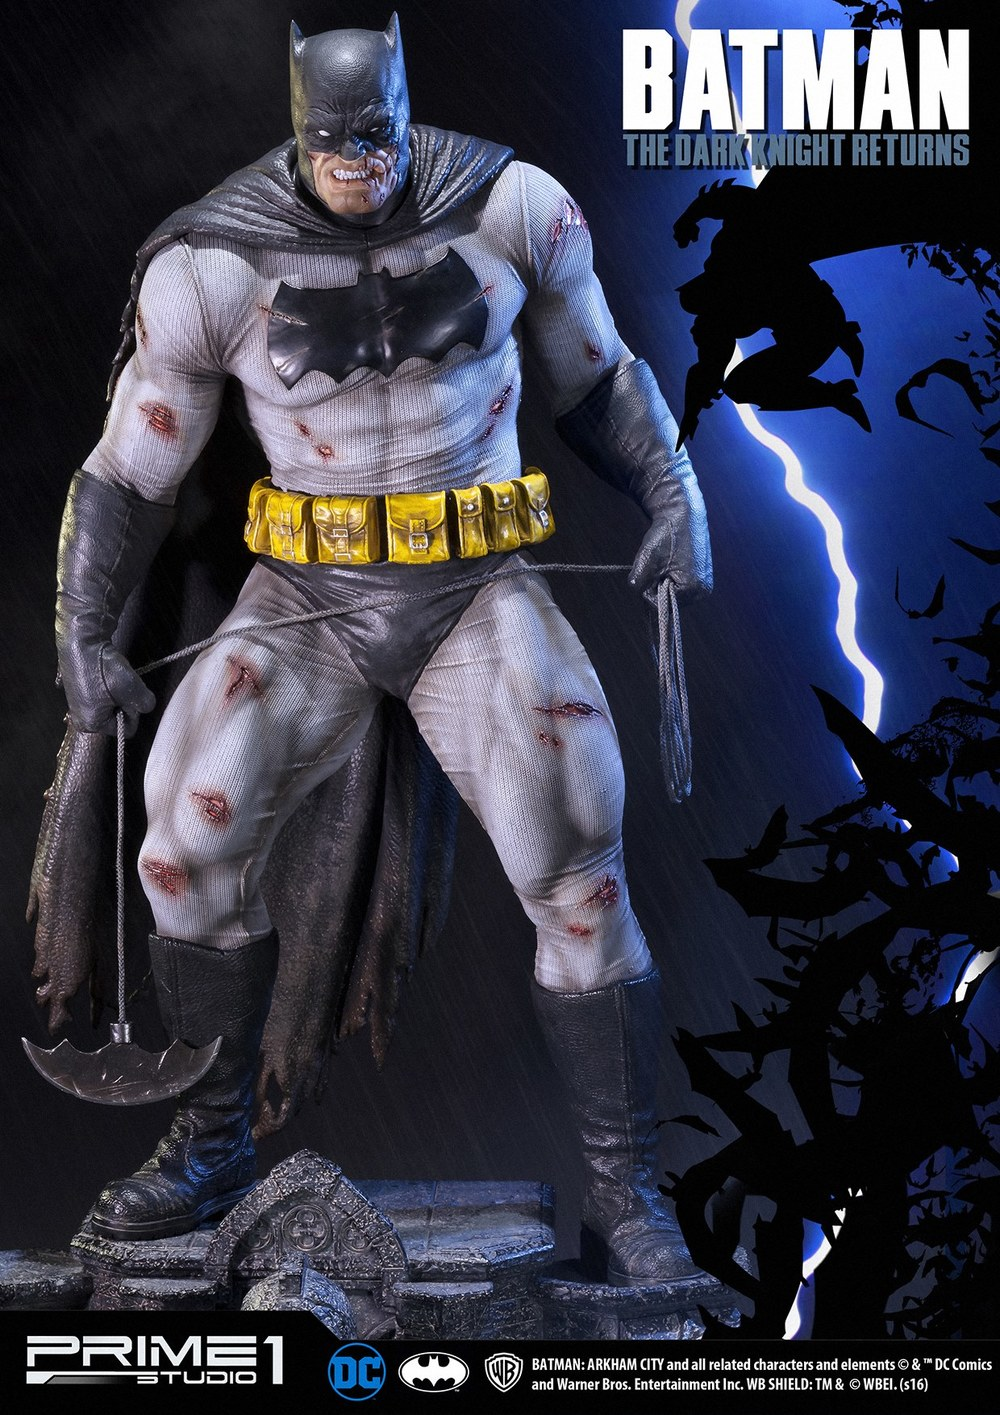 Prime-1-Dark-Knight-Returns-Batman-003.jpg